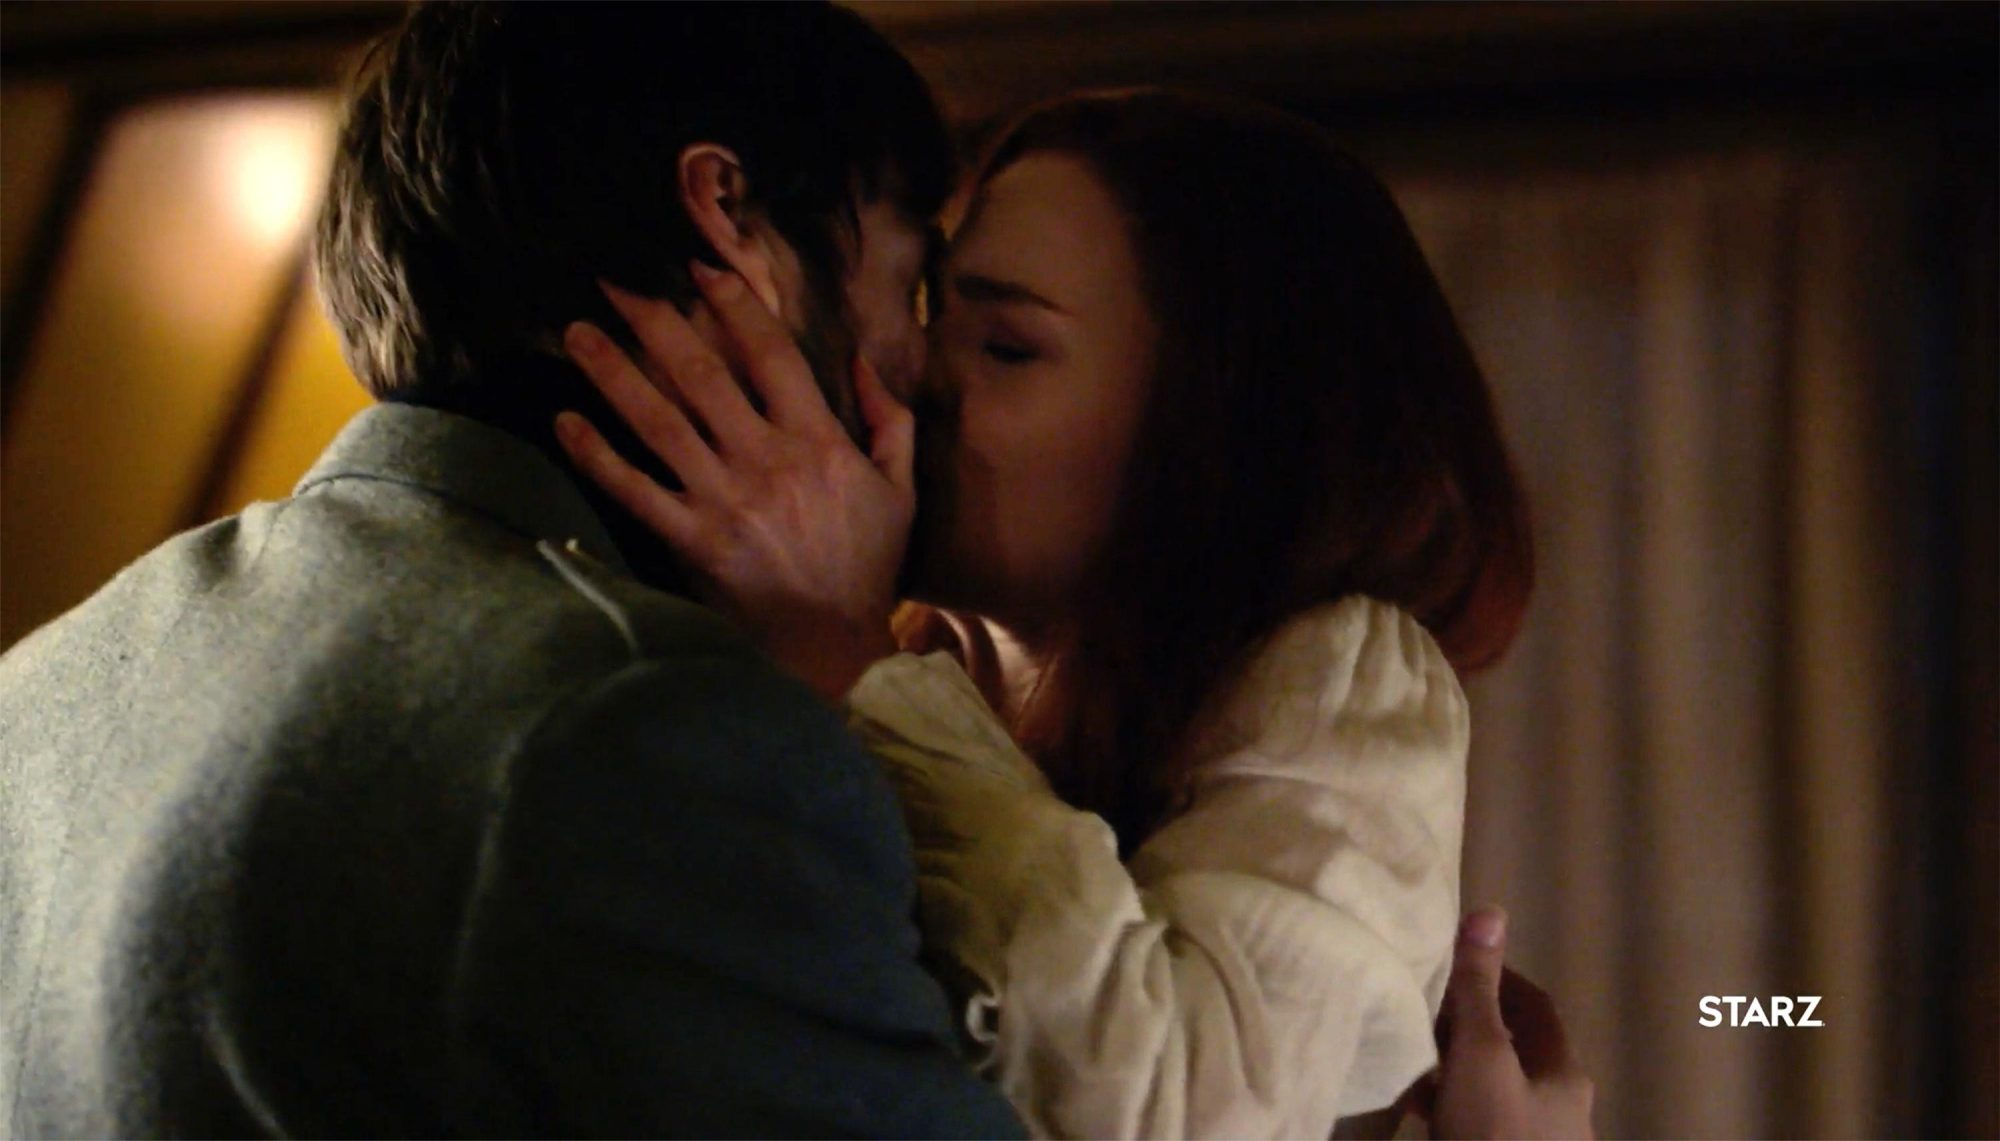 Roger and Bree reunite, Outlander